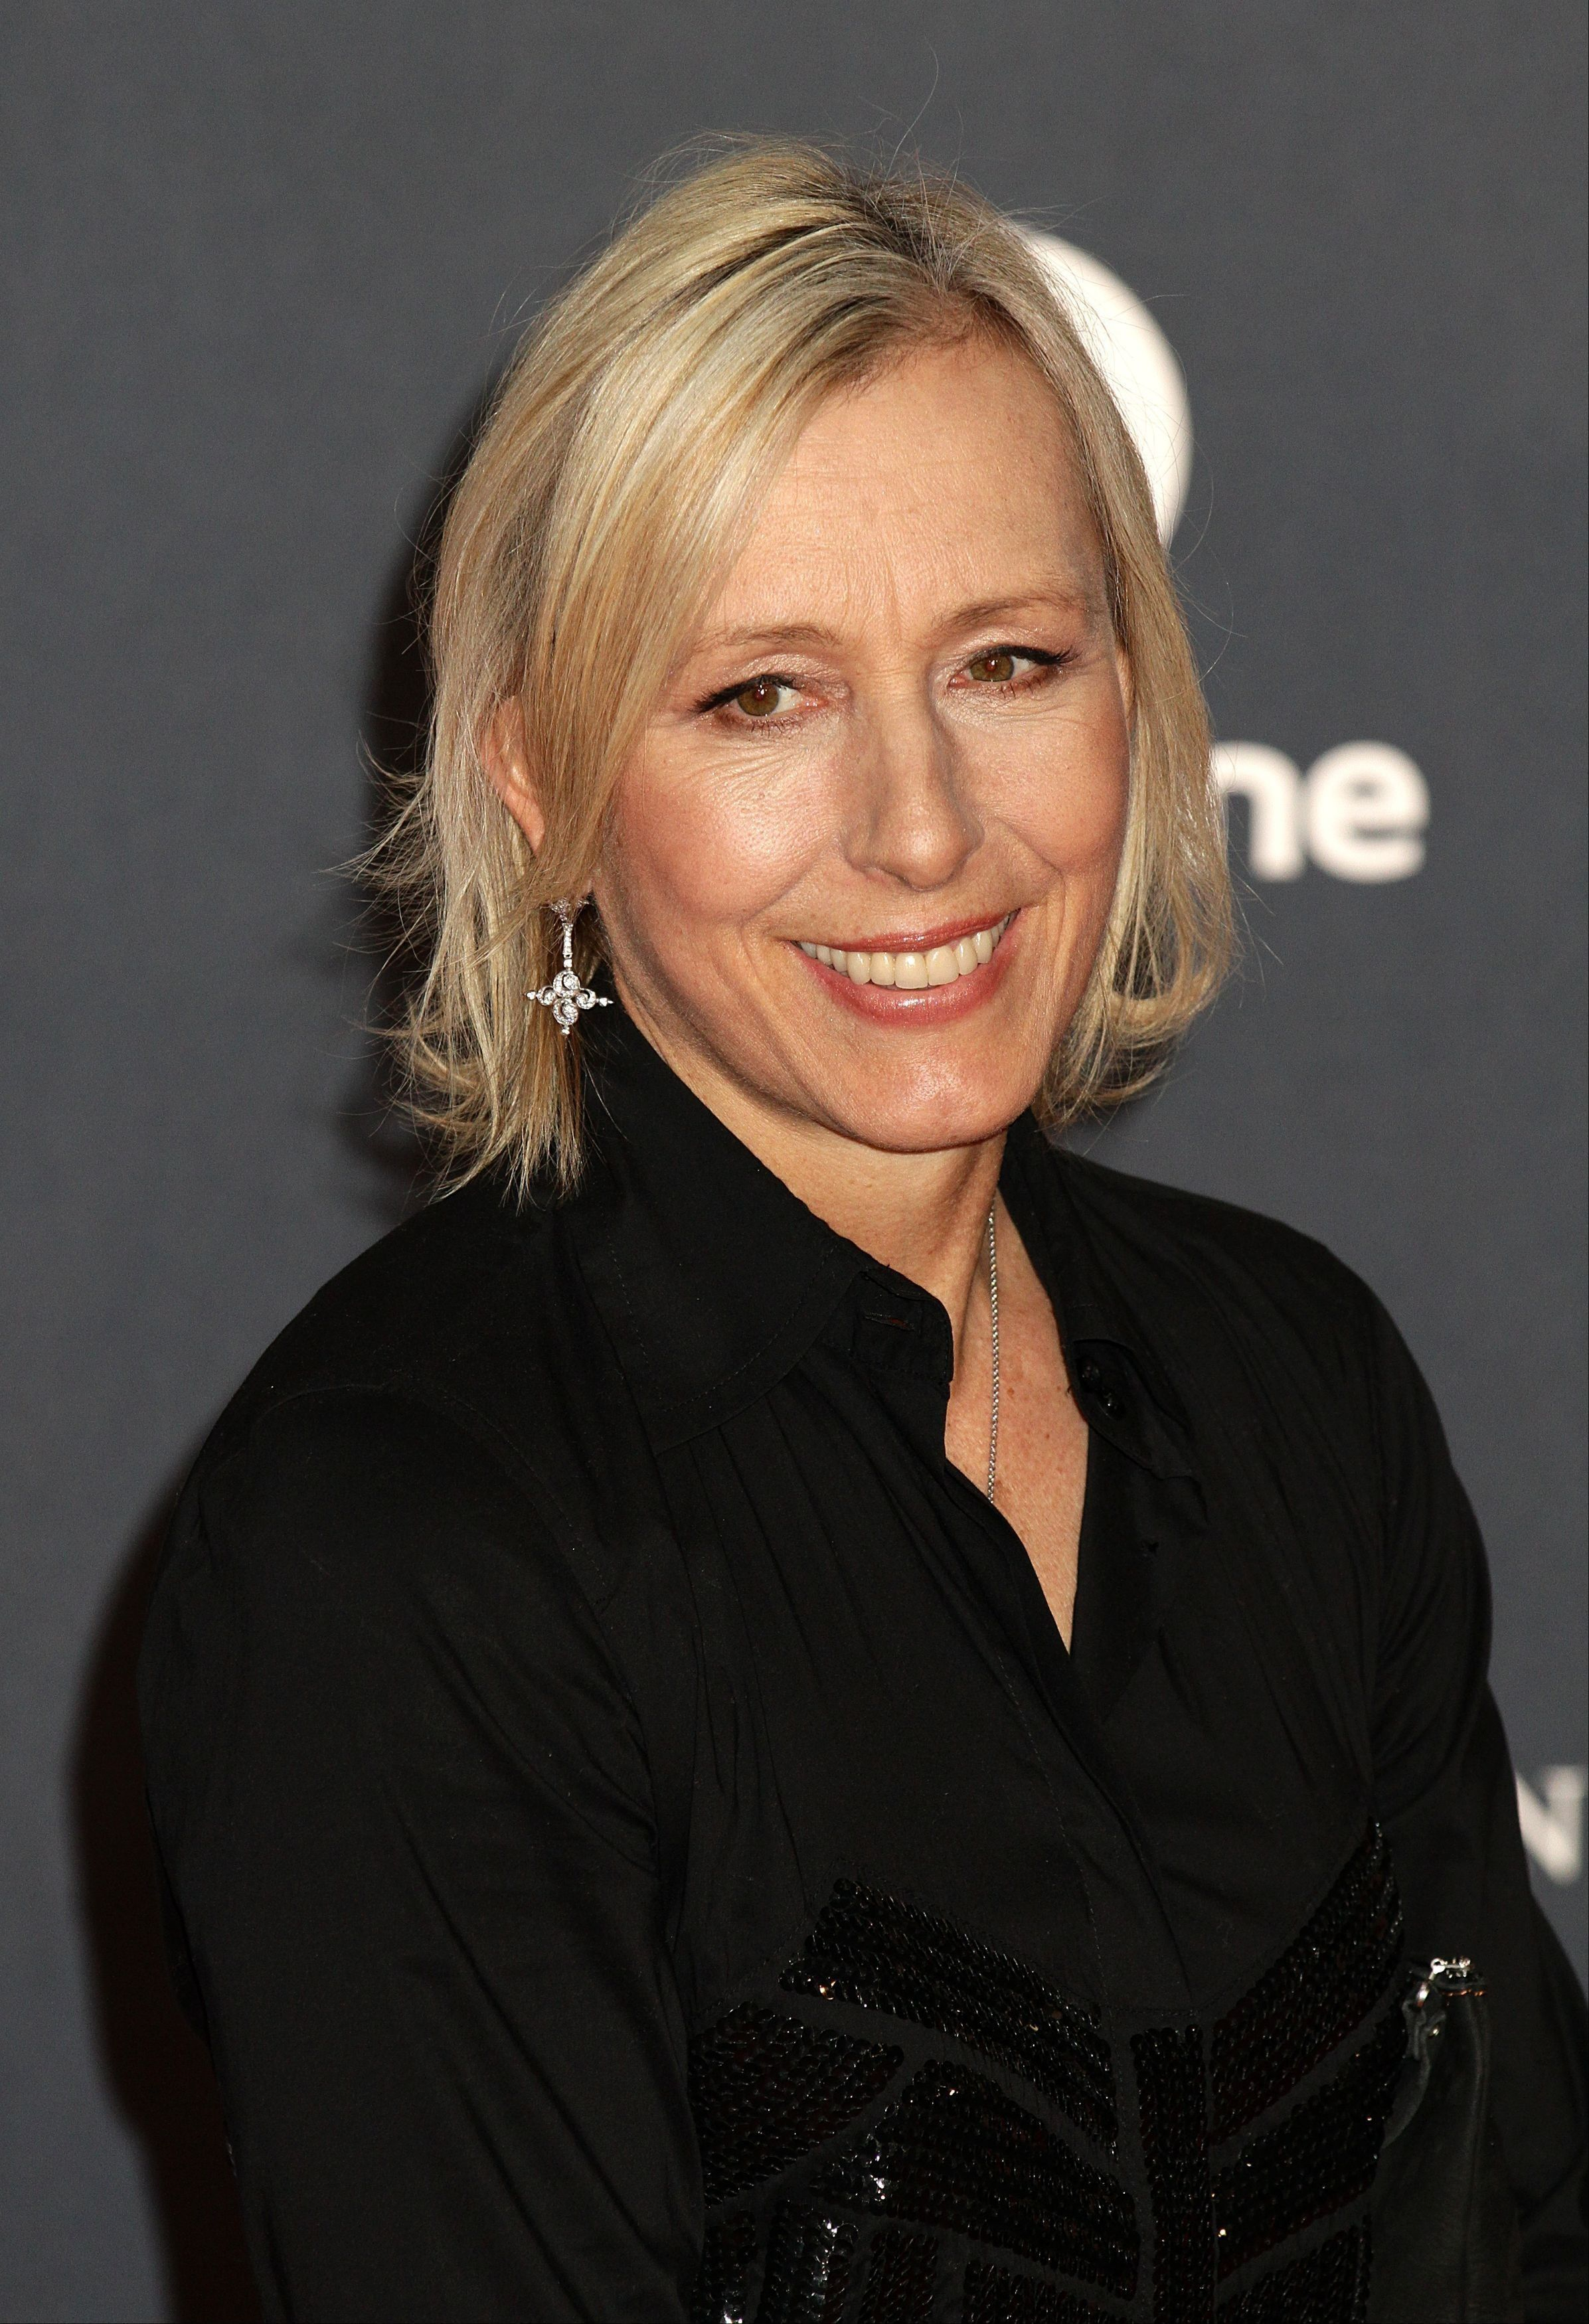 Martina Navratilova Claims She Was Paid 10x Less Than John McEnroe For BBC's Wimbledon